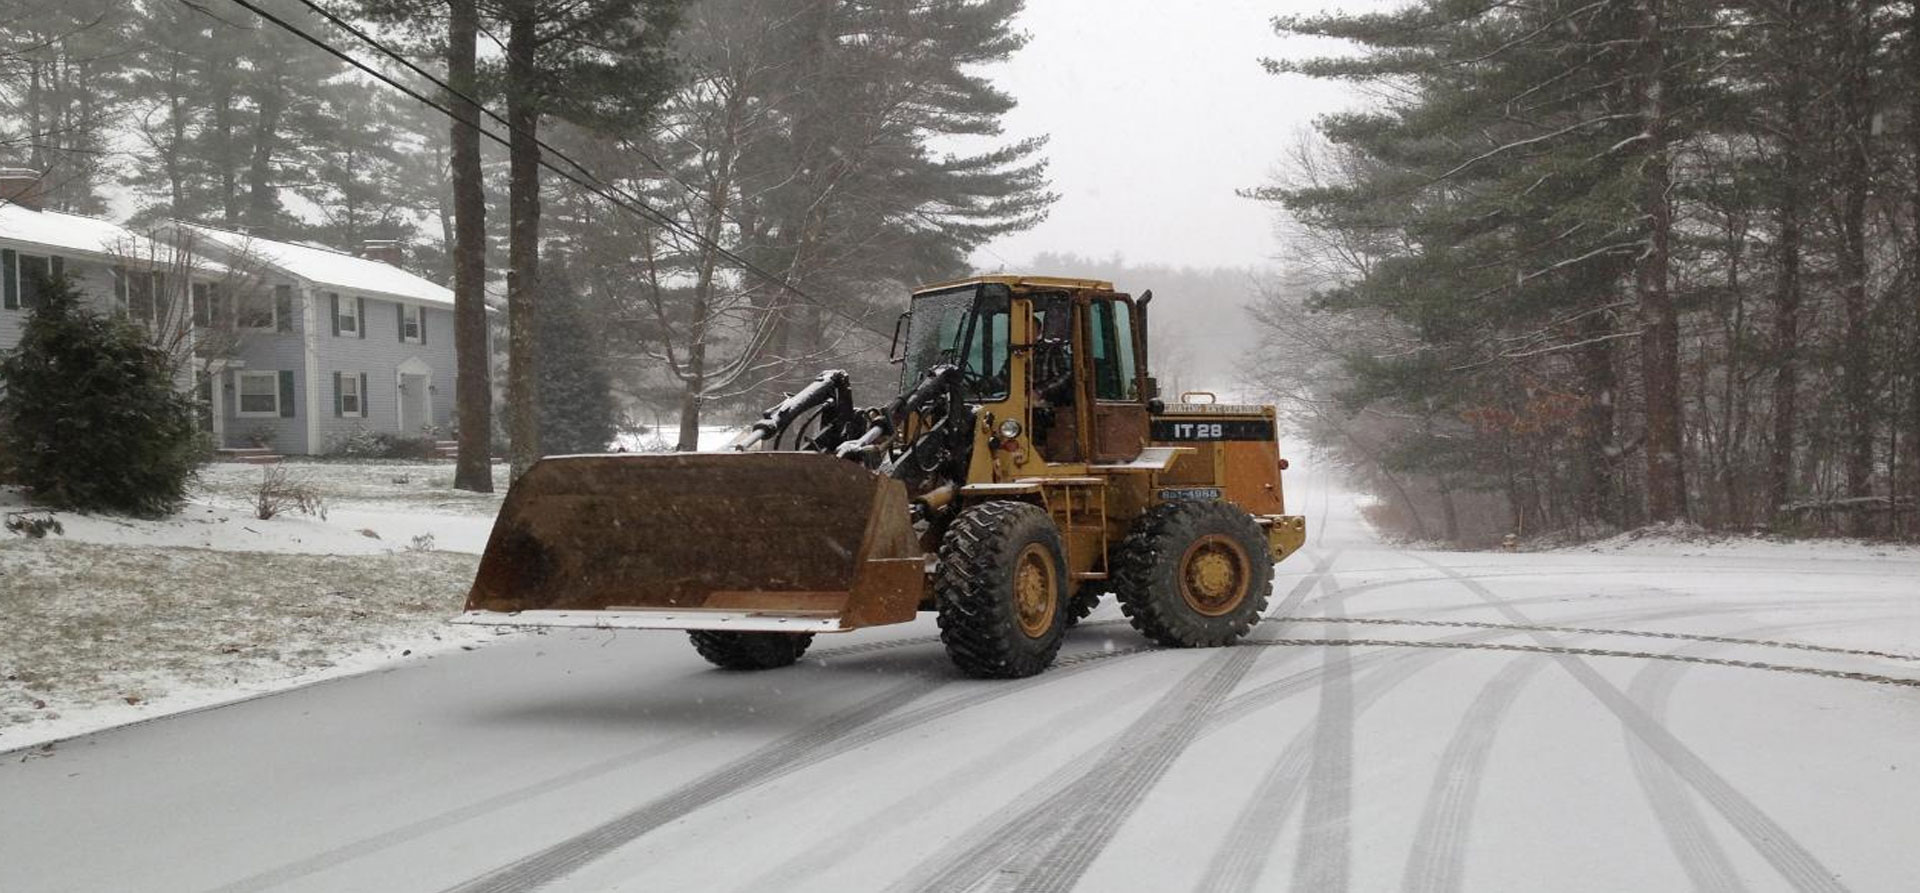 massachusettes-commercial-snow-plowing